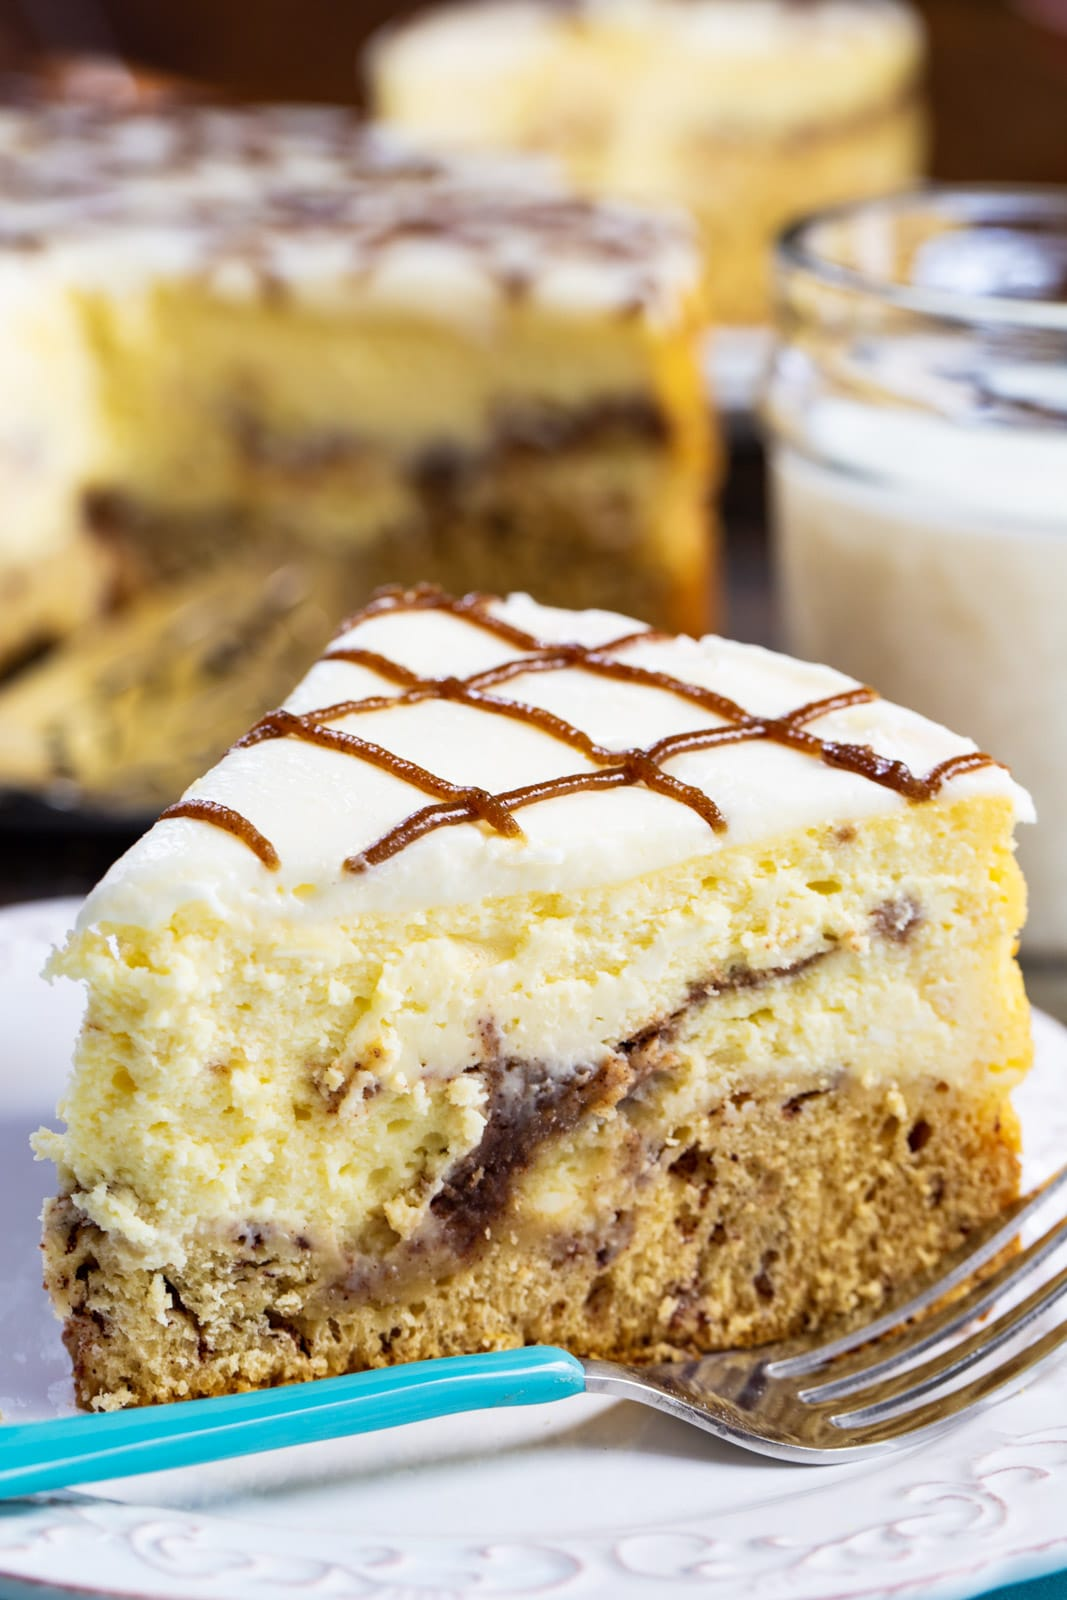 Slice of Cinnamon Roll Cheesecake on a plate with a fork.